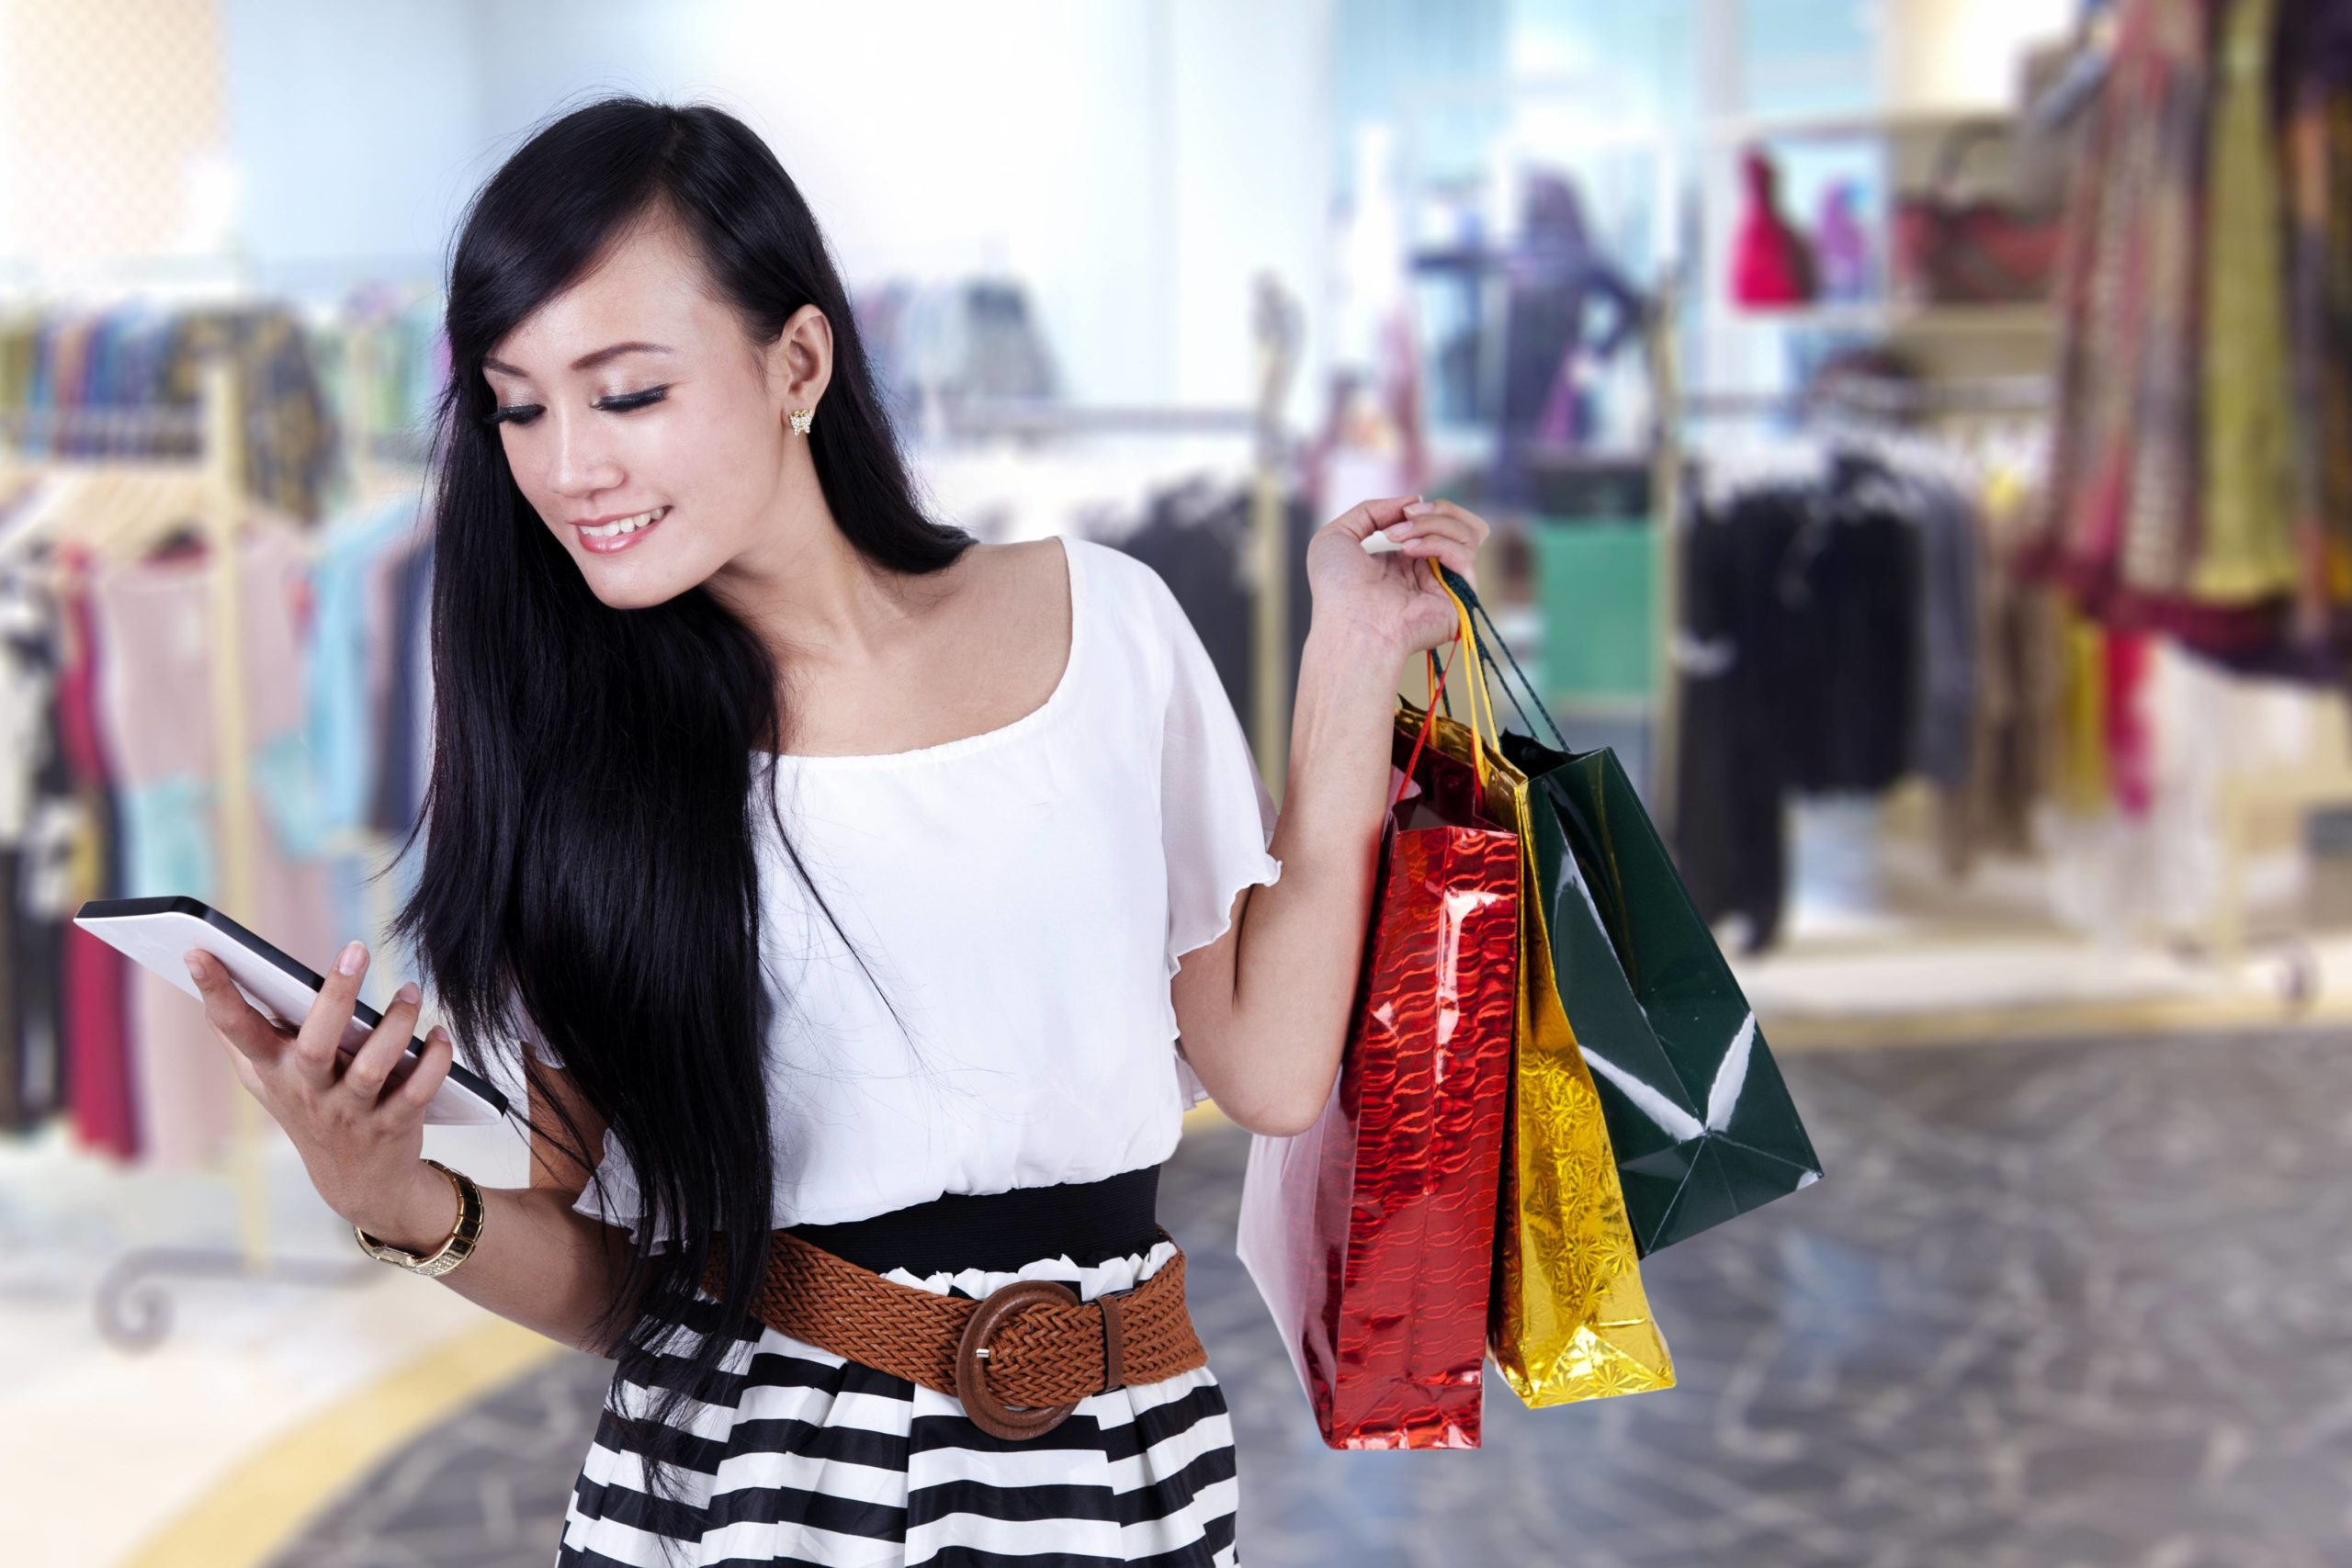 Buy Quality and Affordable Clothing Hassle-Free Online